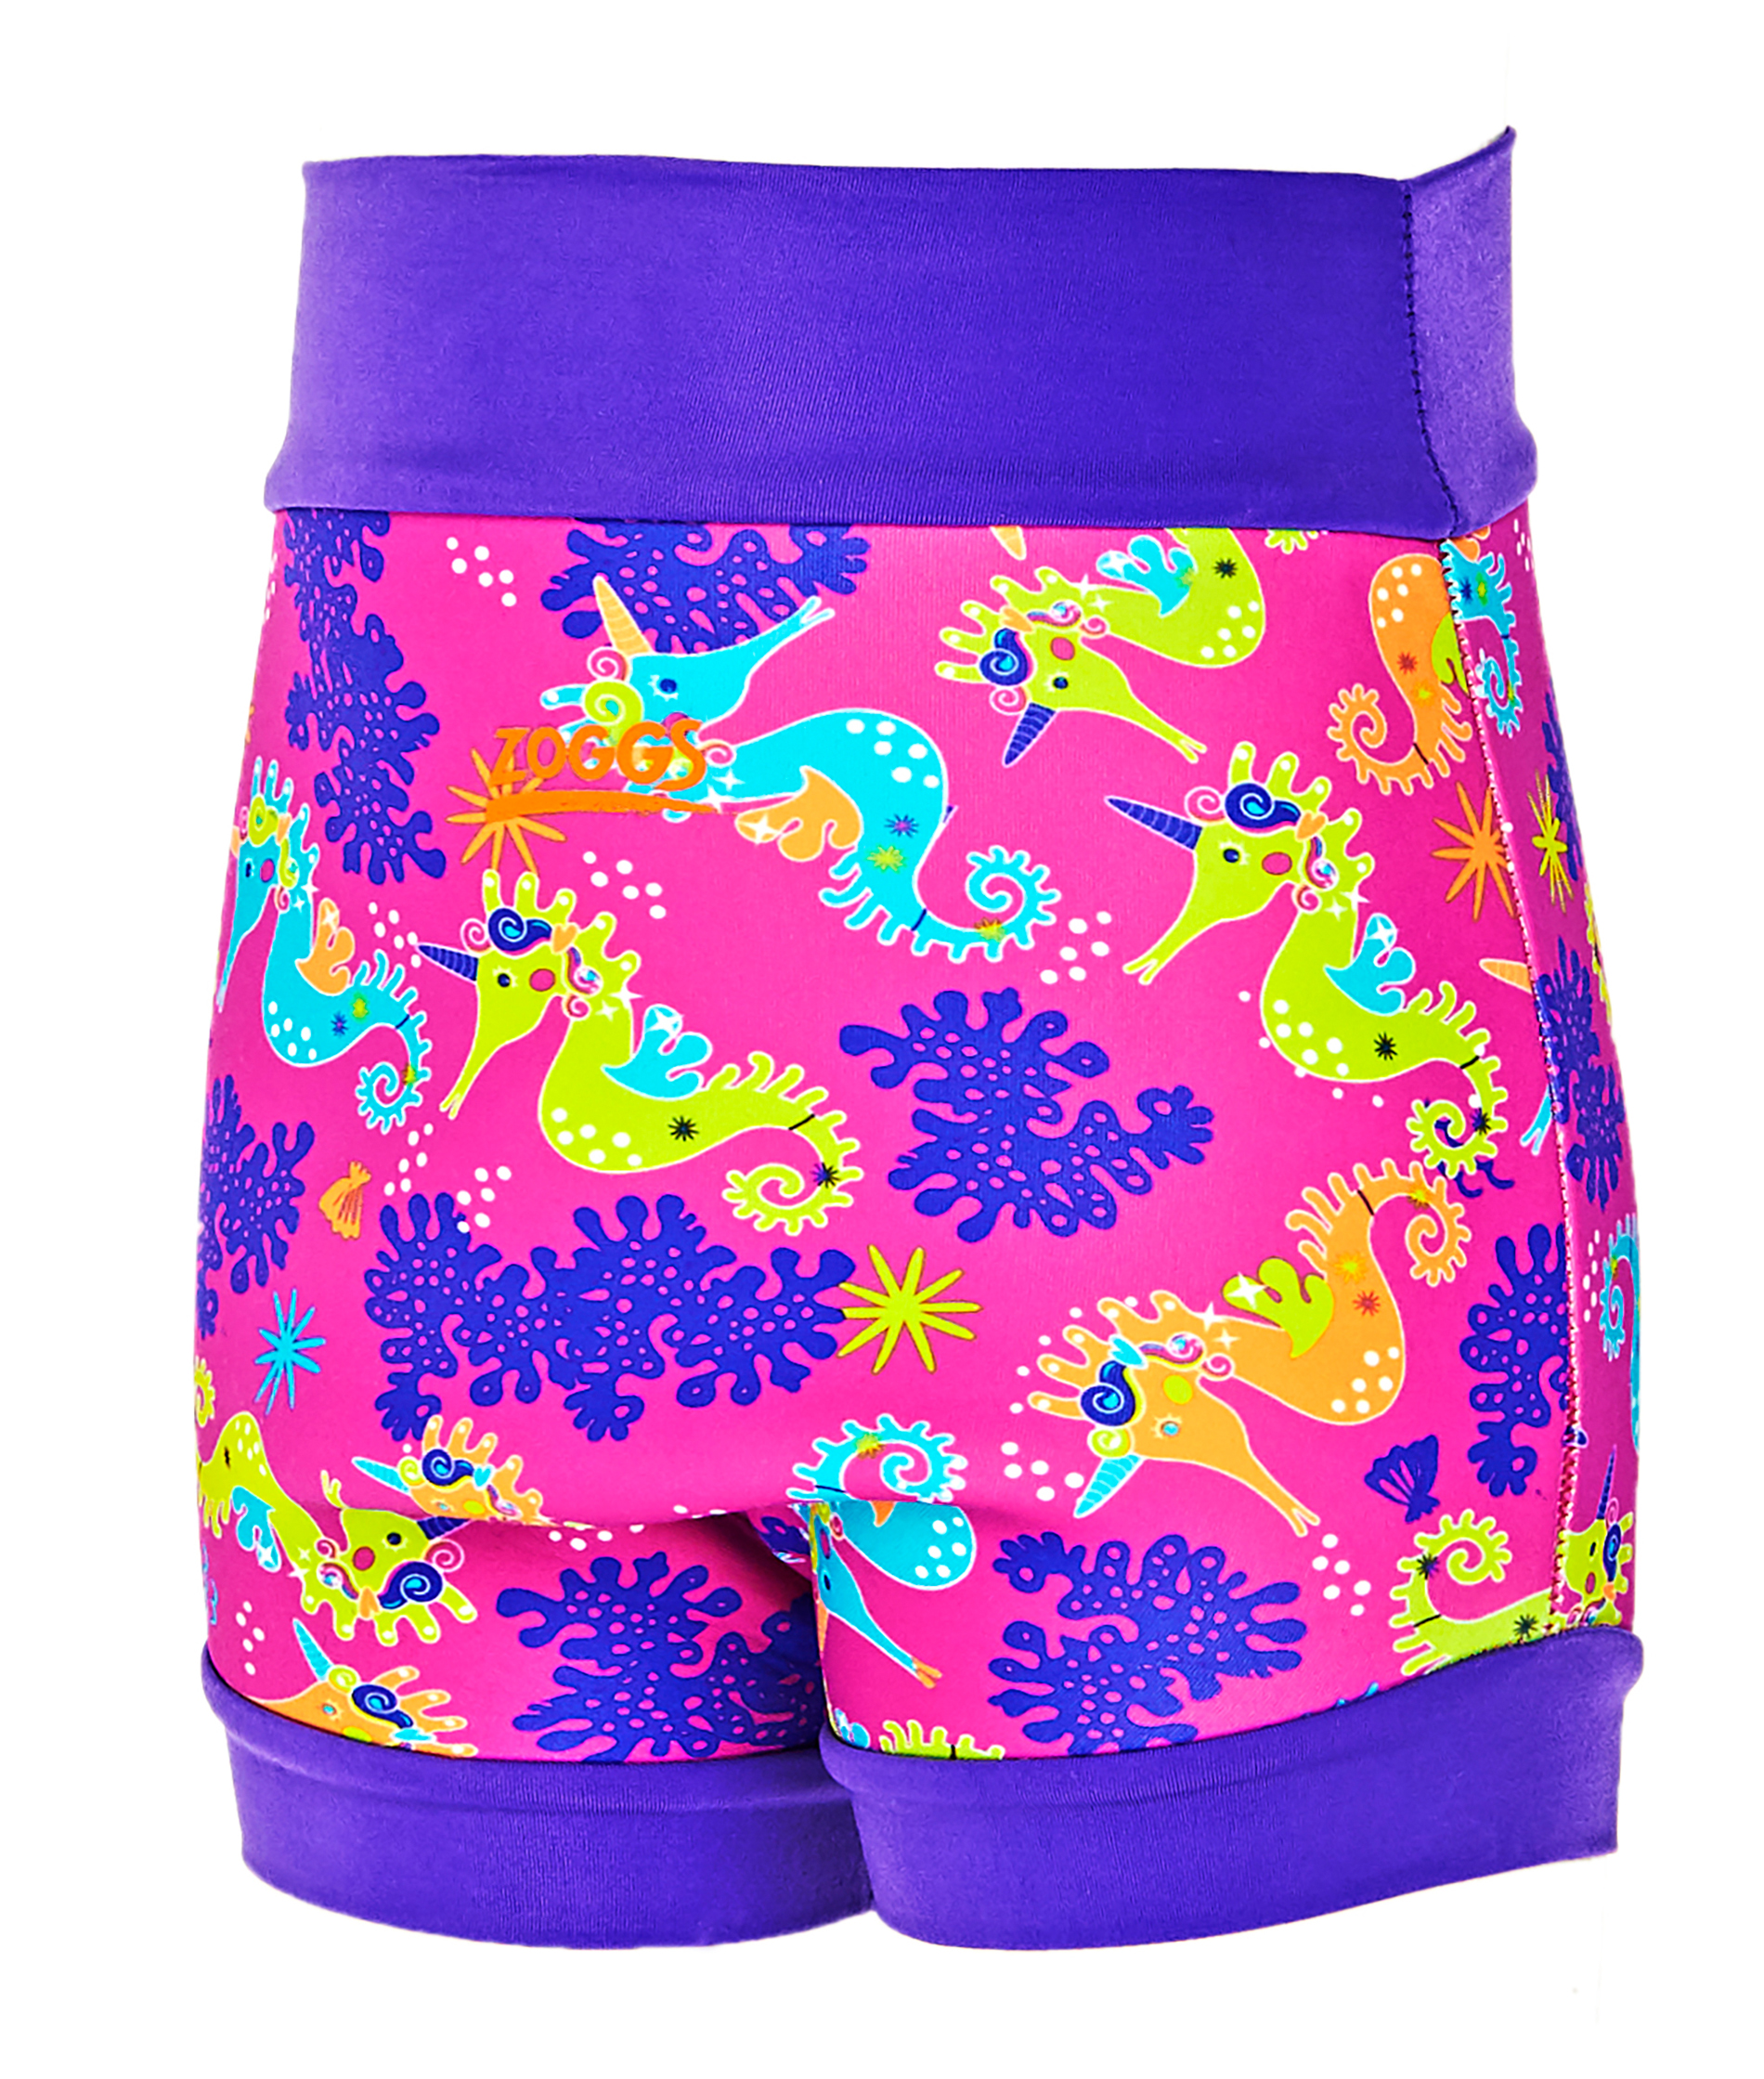 Zoggs Sea Unicorn Swimsure Nappy